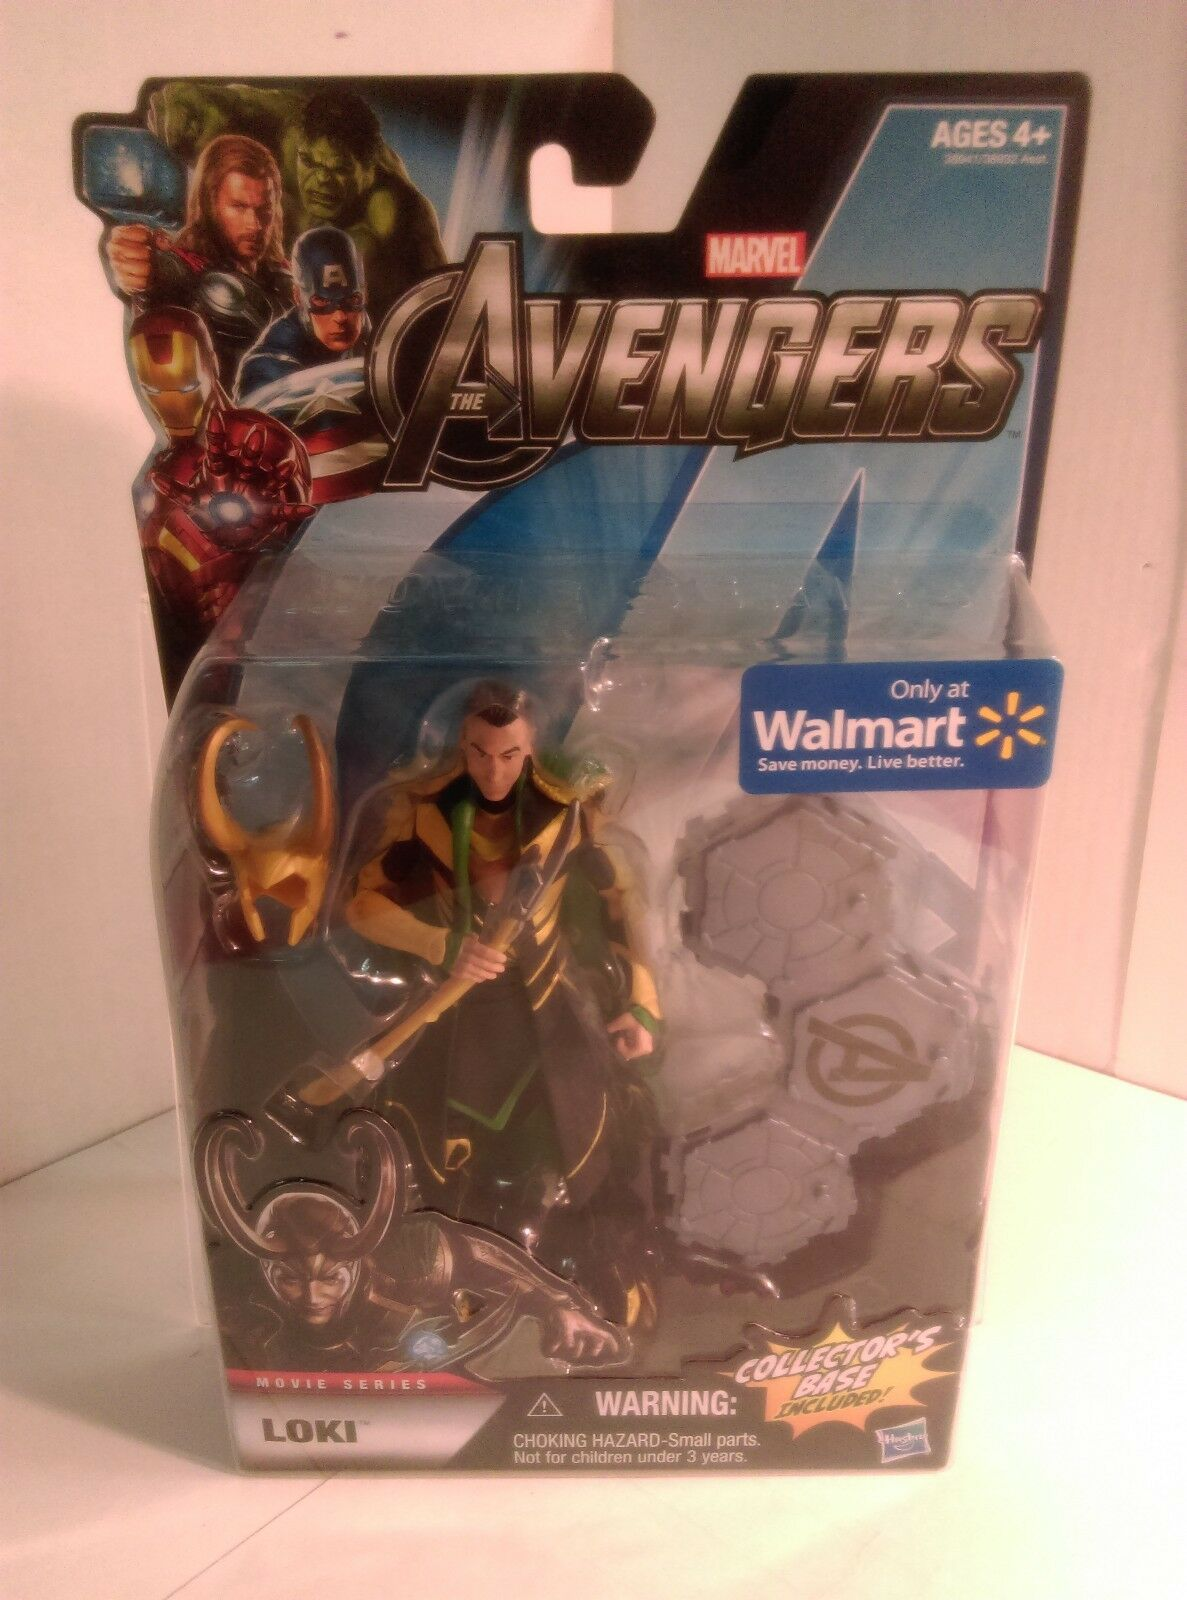 HASBRO The Avengers Movie Series LOKI - Wal-Mart EXCLUSIVE giallo VARIANT - NEW